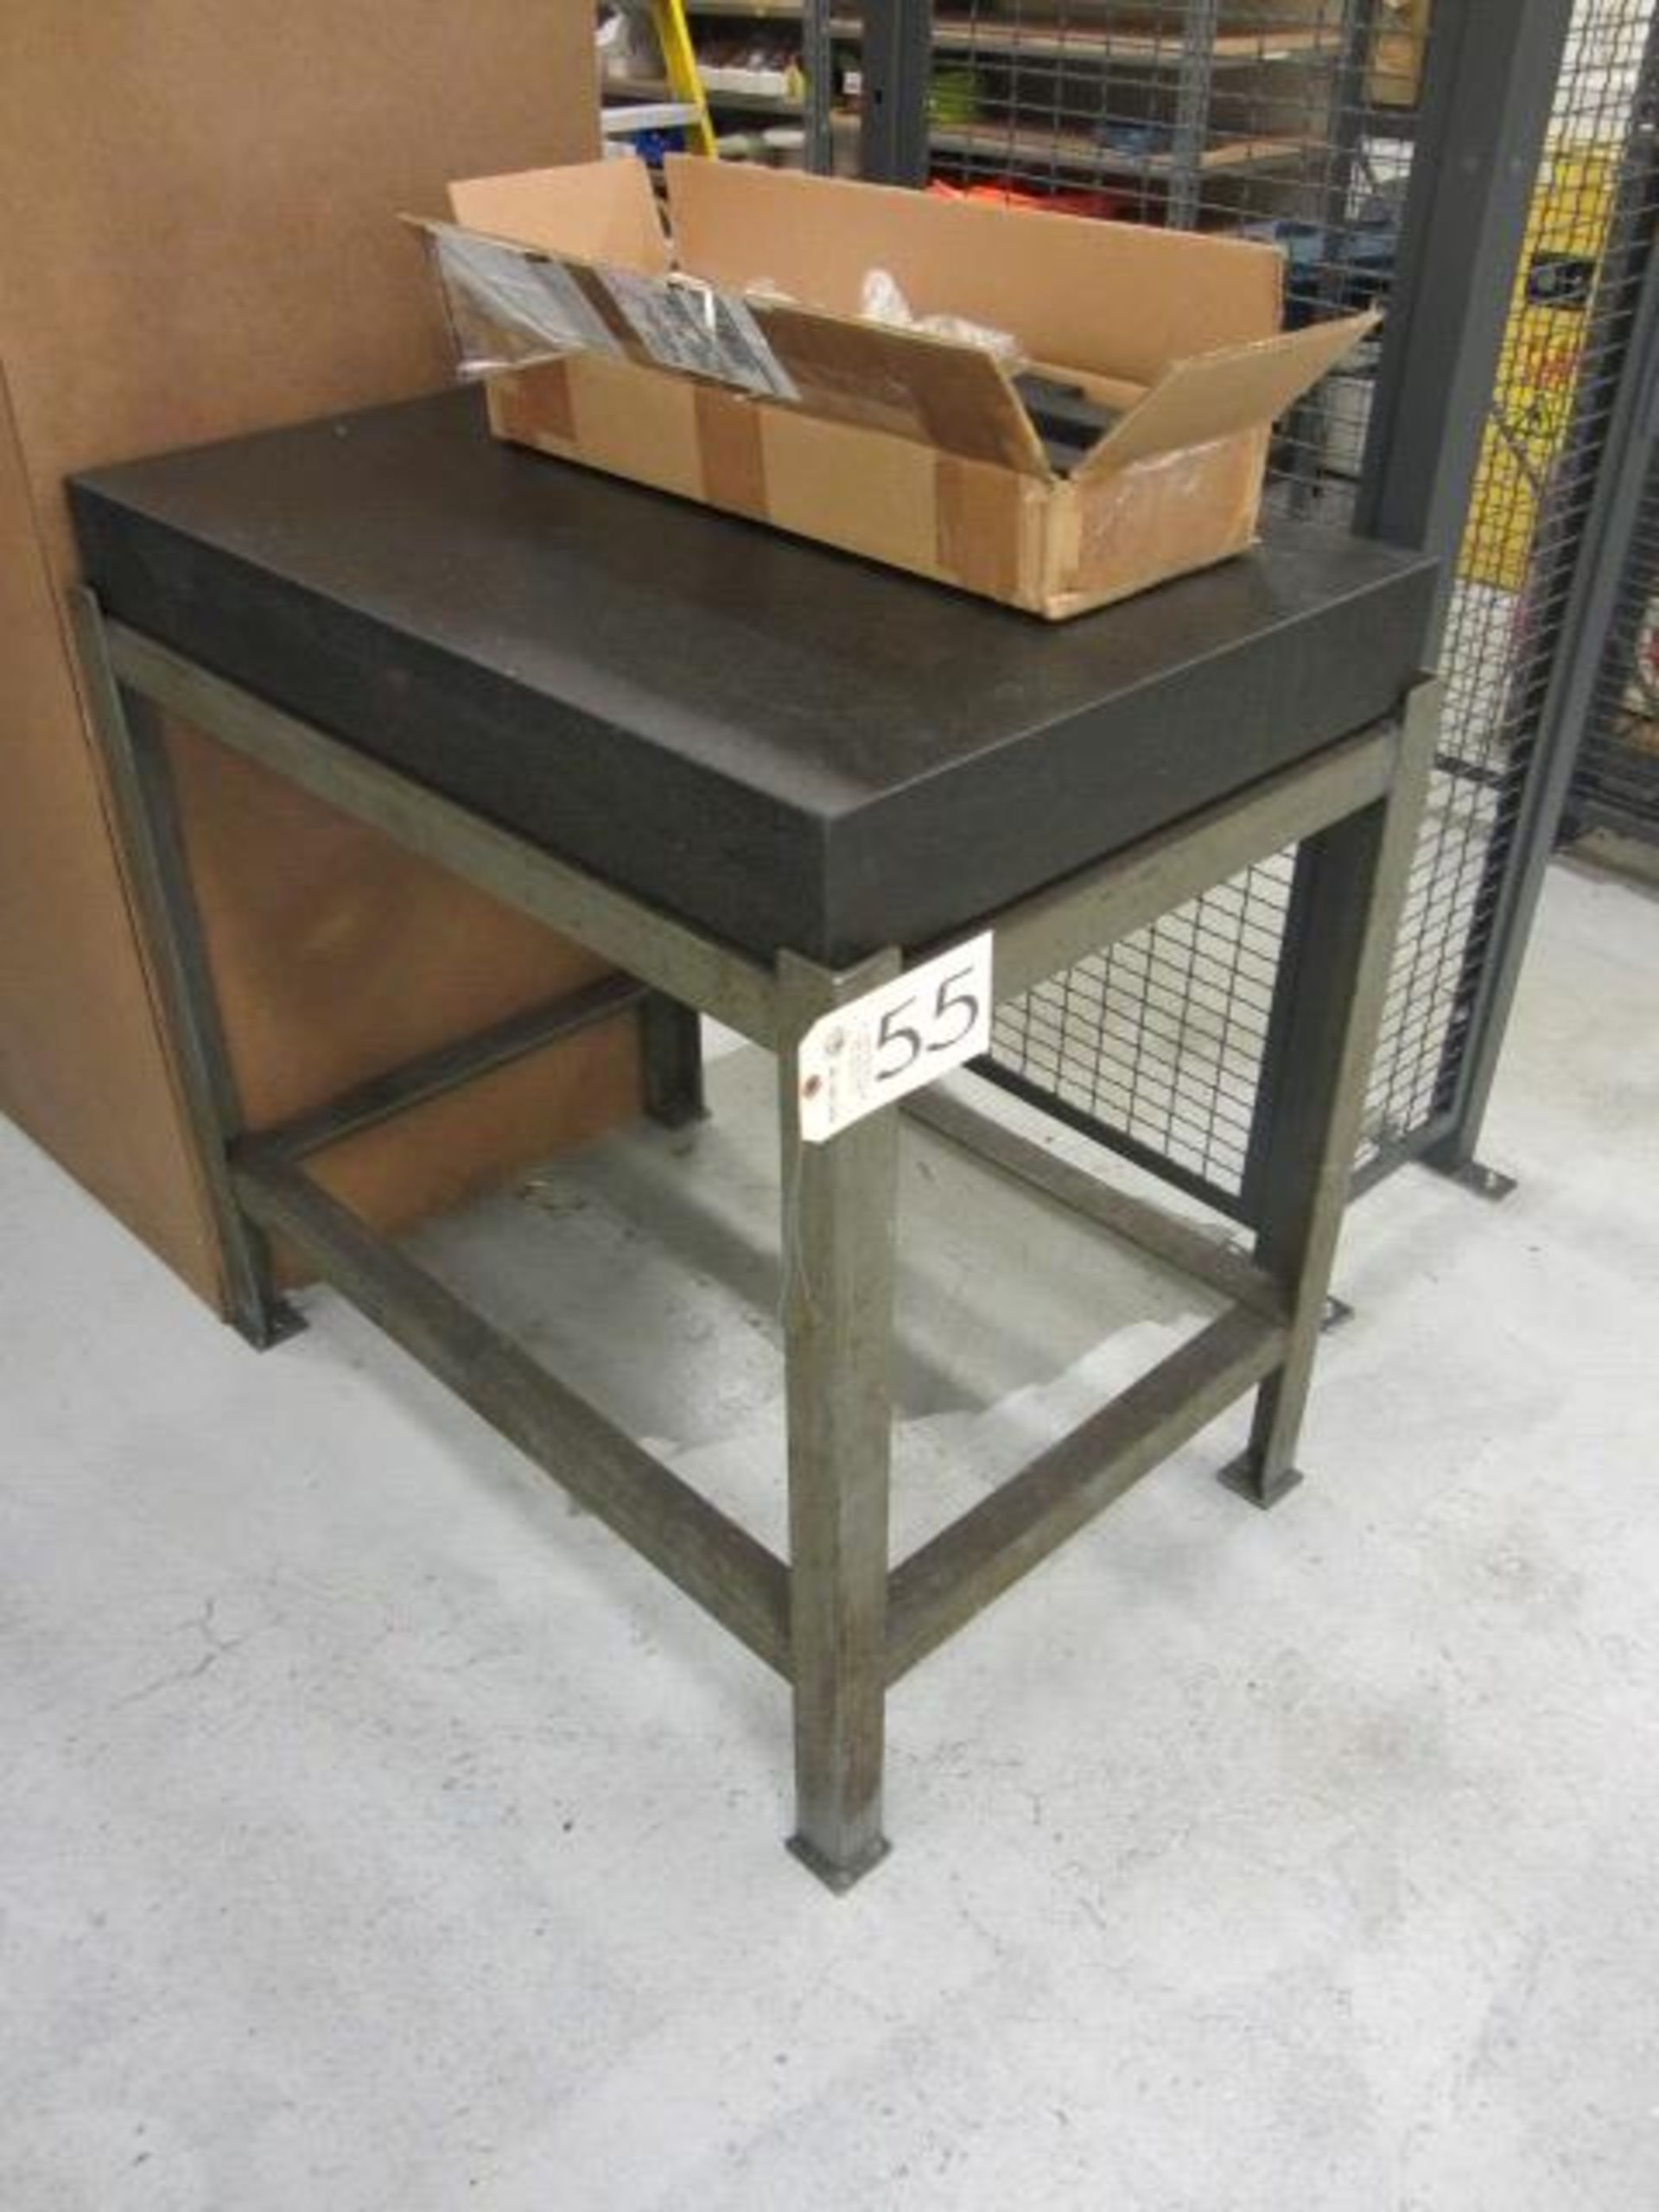 Lot 55 - 24'' x 36'' Surface Plate with Stand